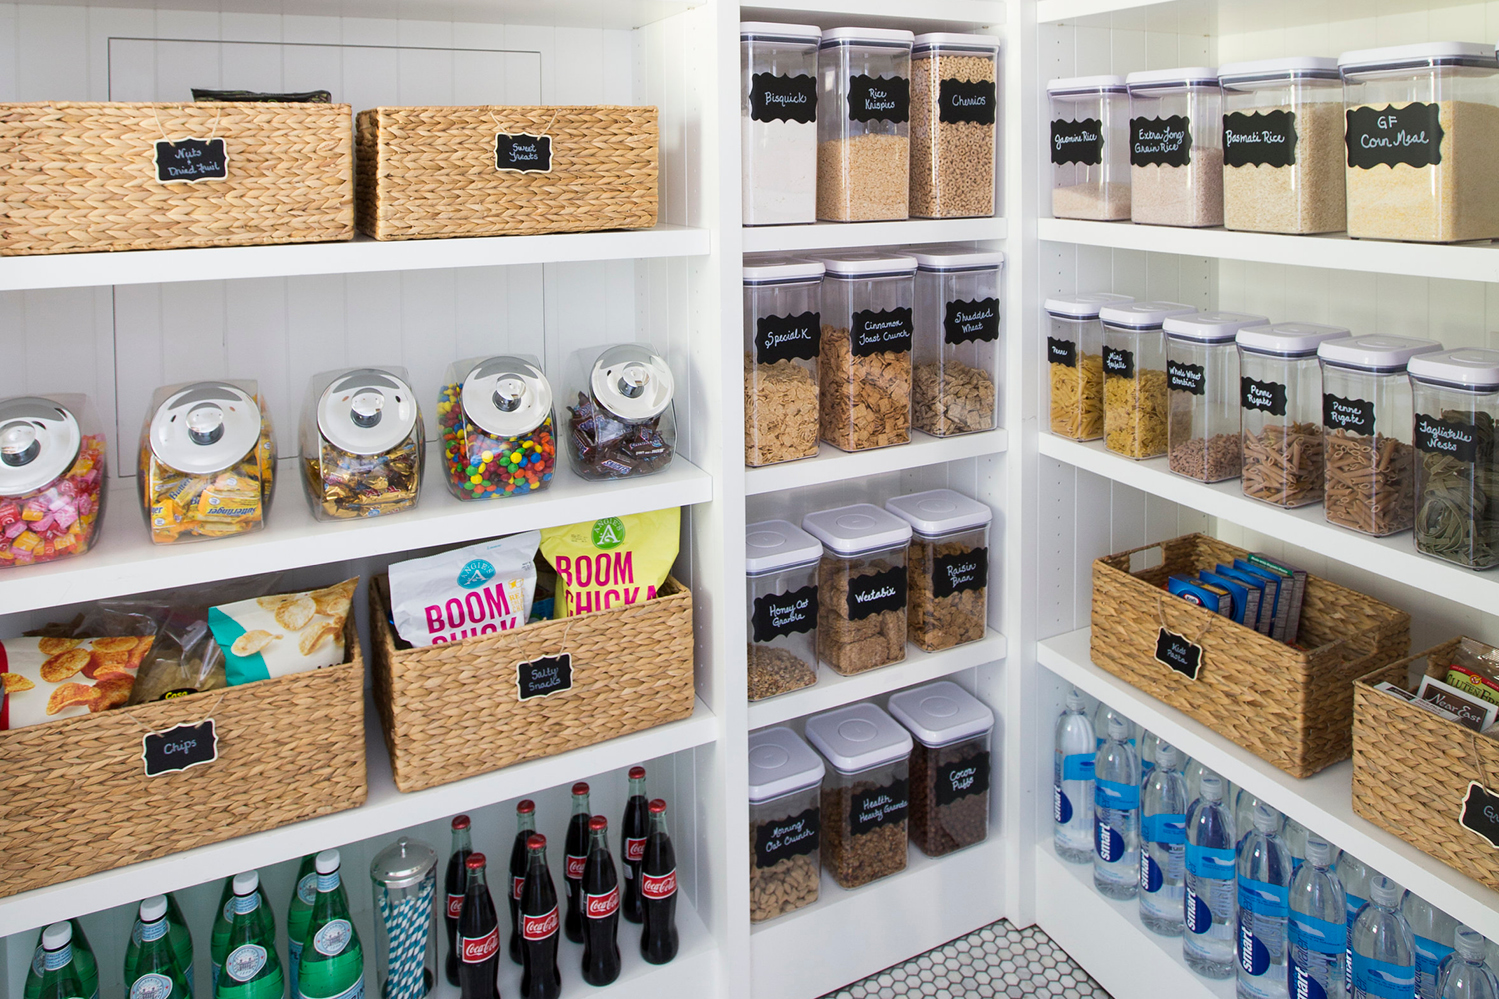 An organized and well-stocked pantry